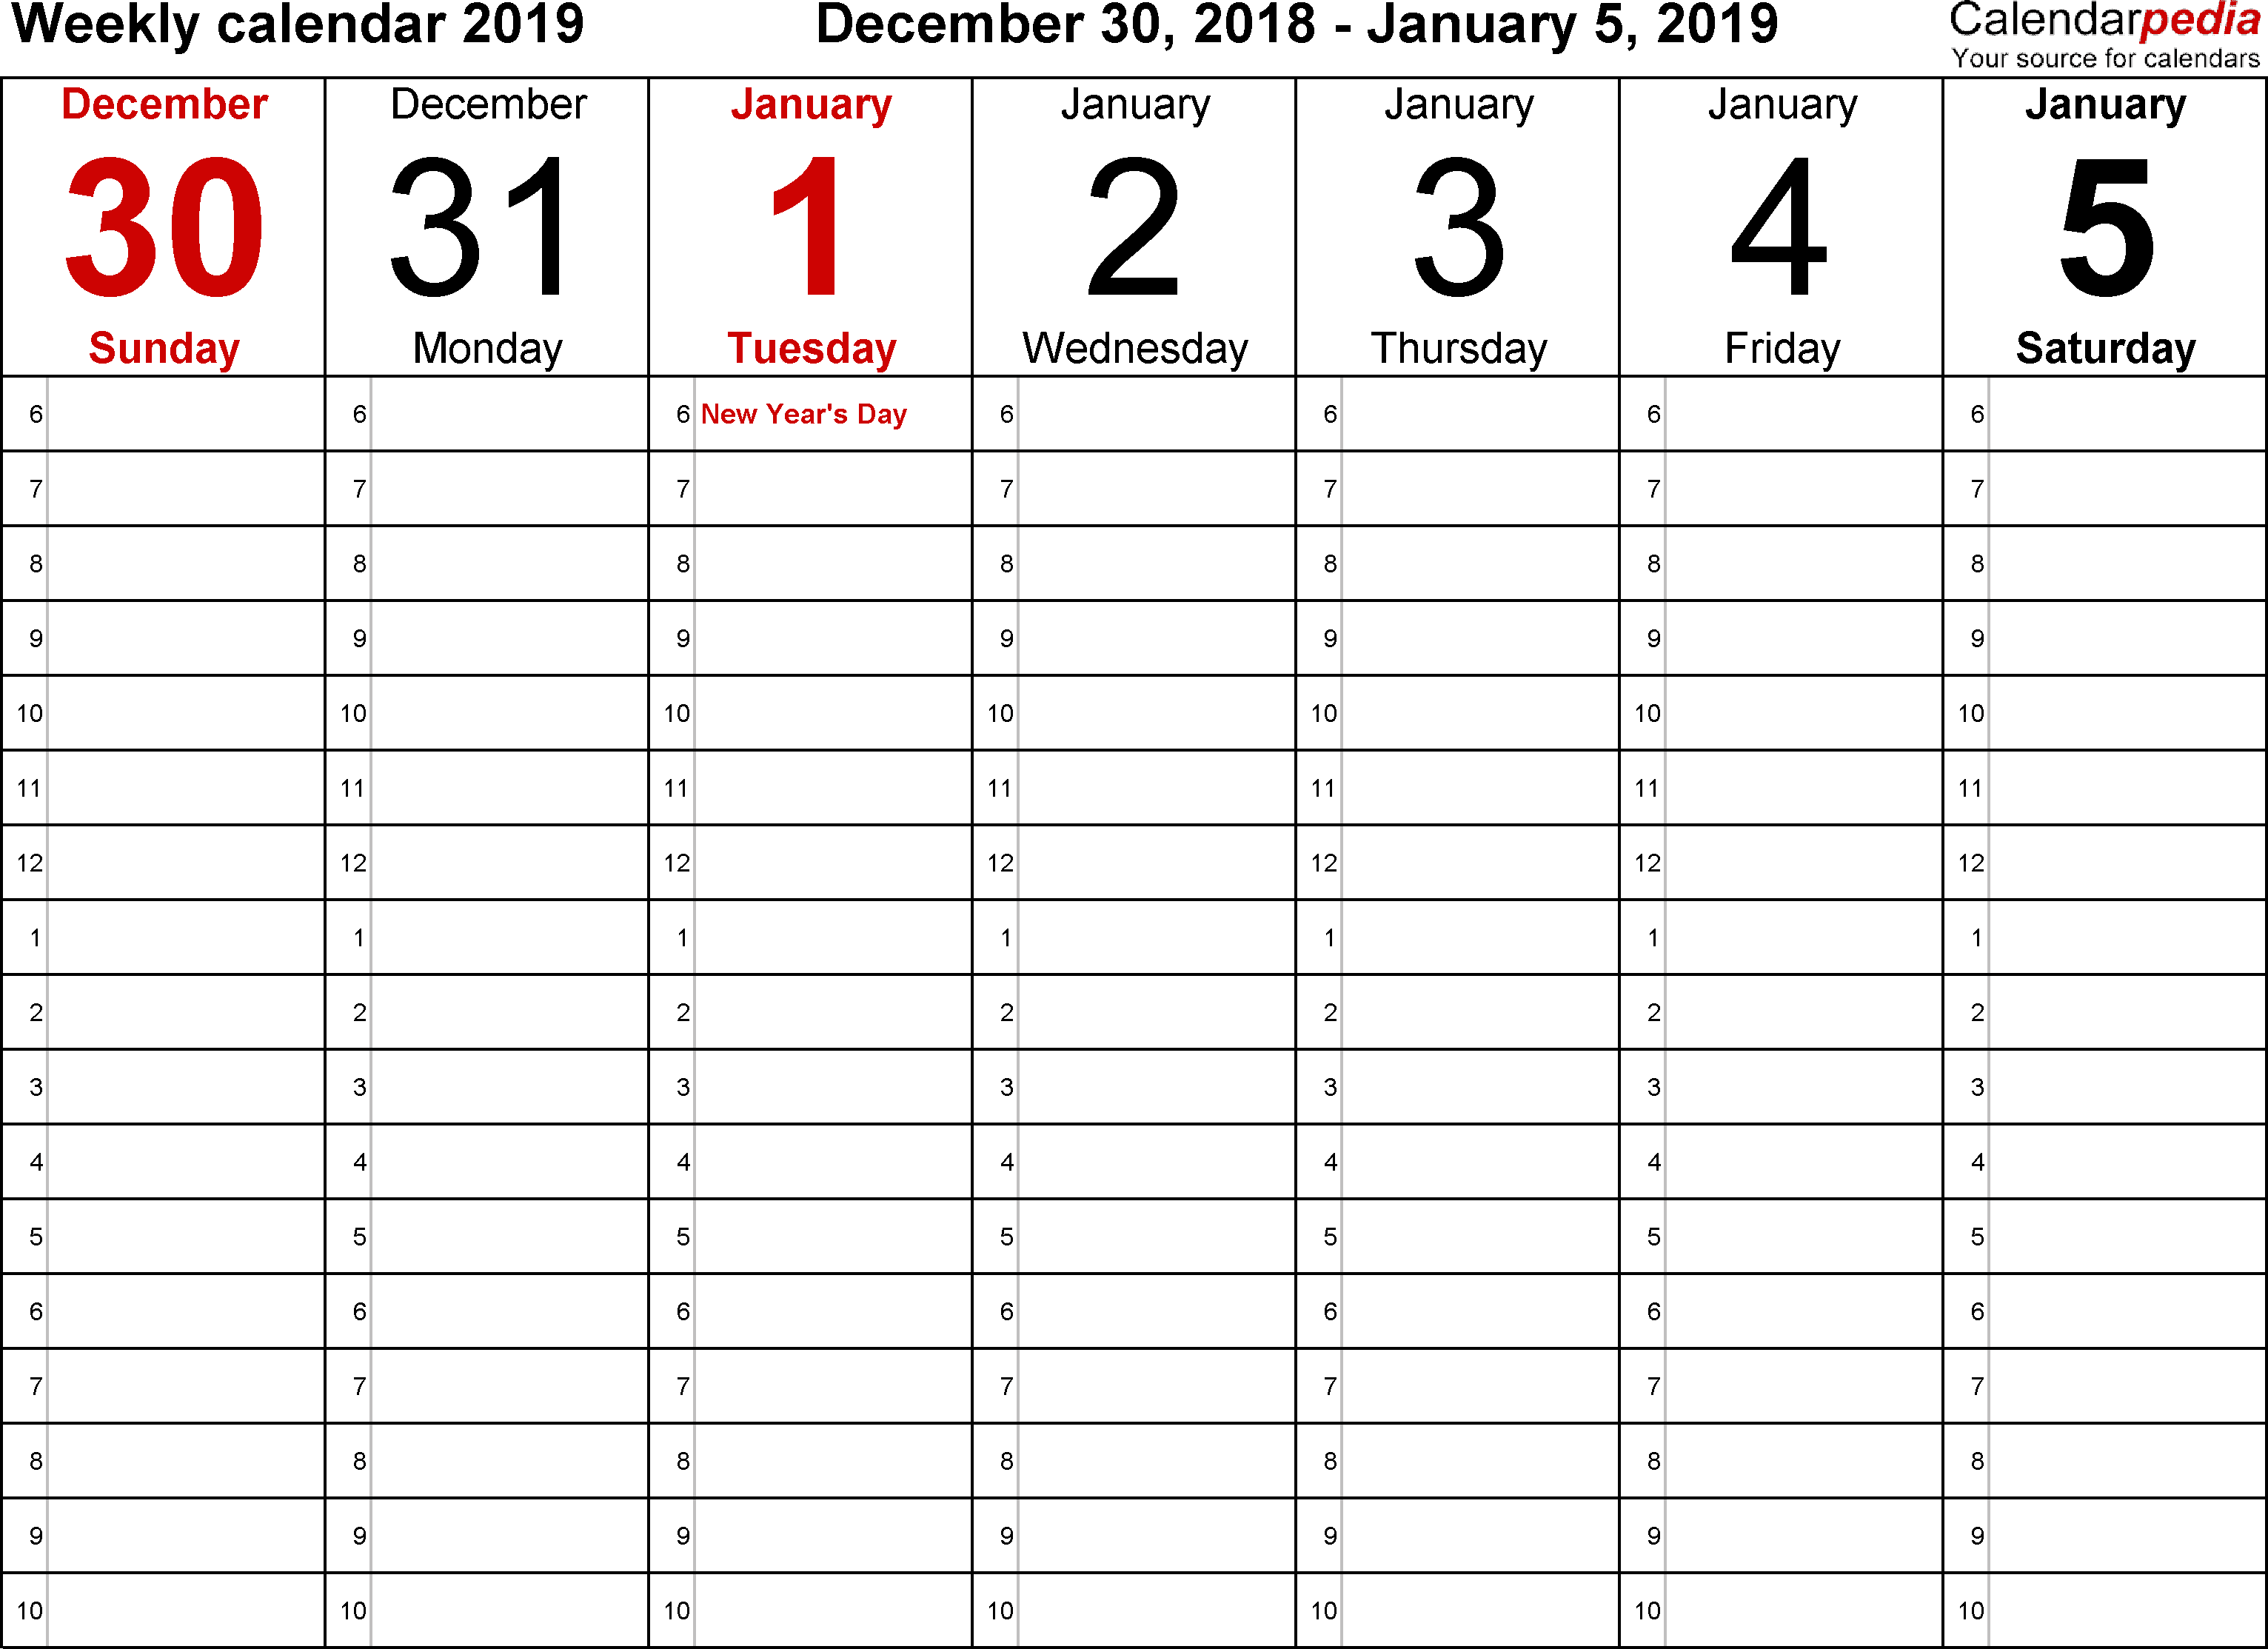 weekly calendar 2019 template for excel version 1 landscape 53 pages time